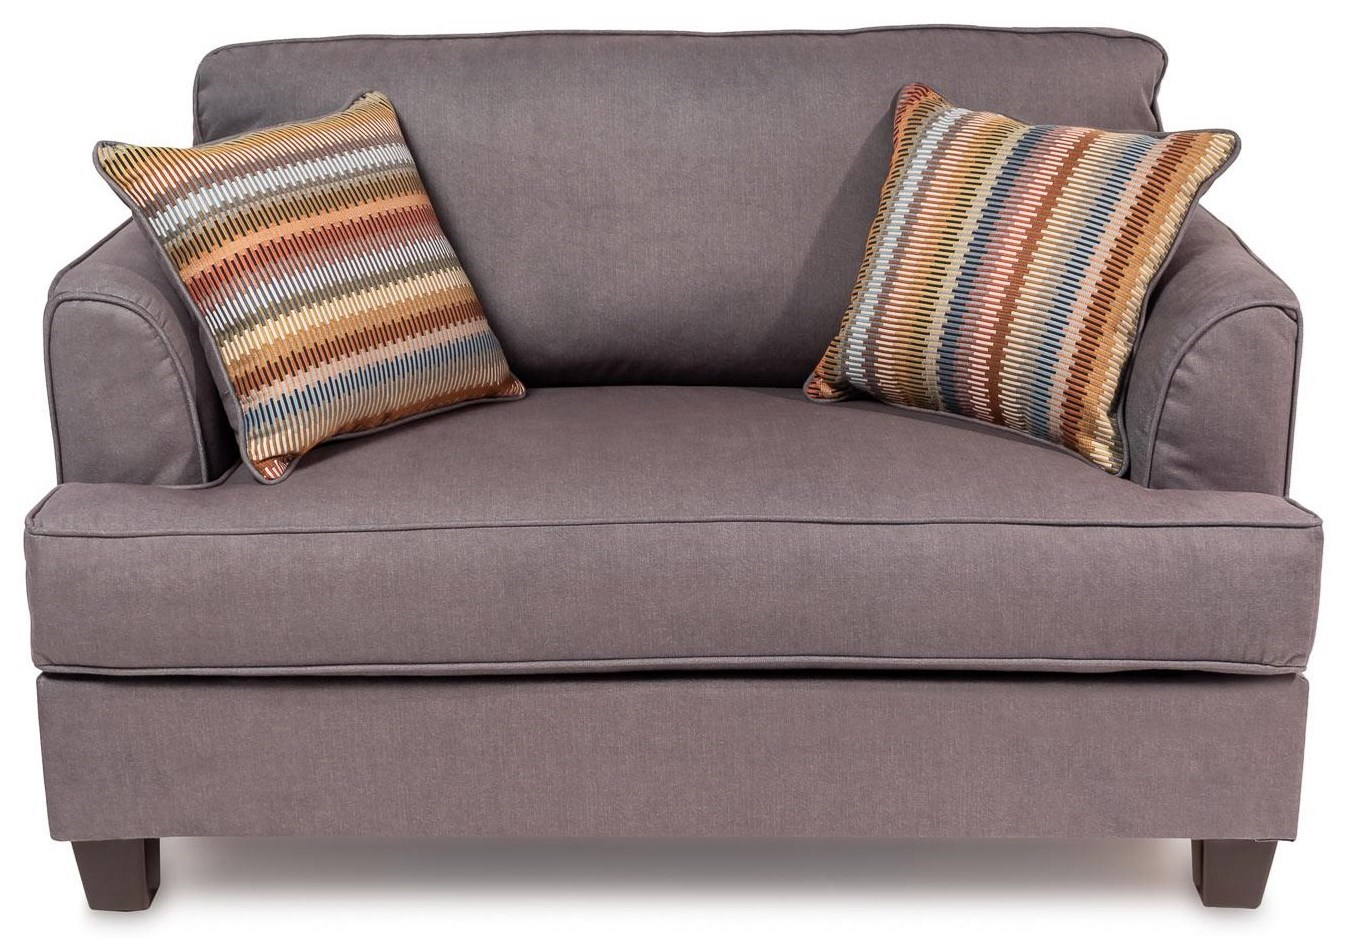 Exceptionnel Rockford Twin Sleeper Oversize Chair With 2 Pillows By Serta Upholstery At  Rotmans